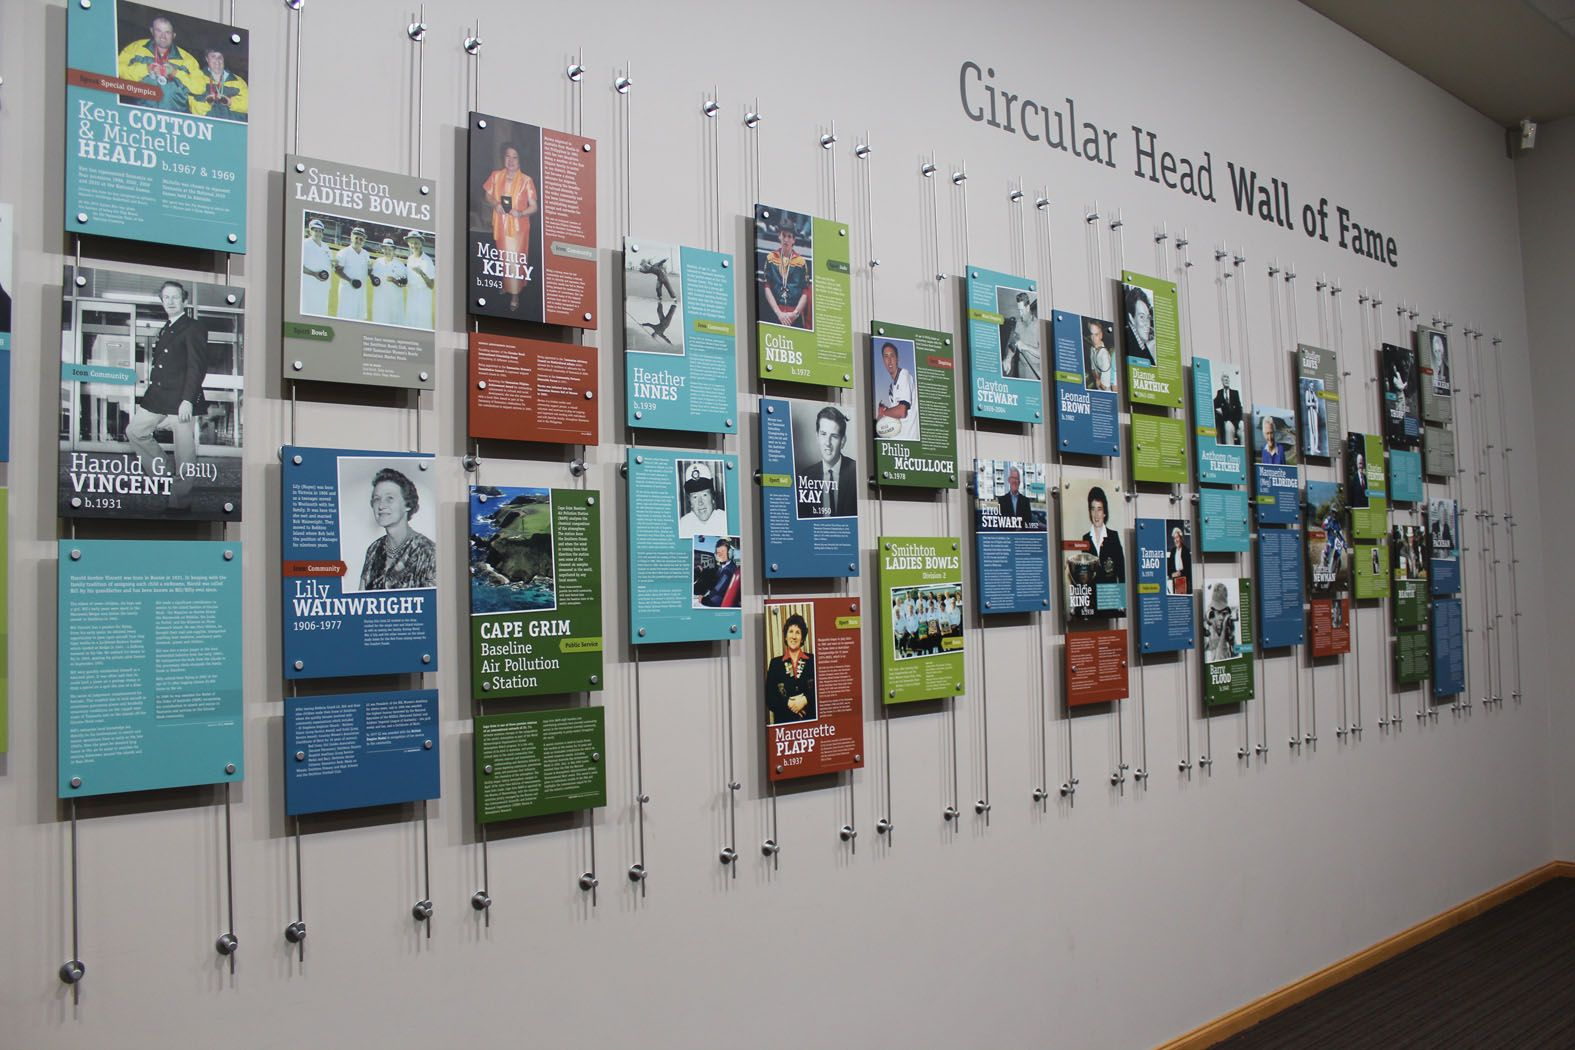 Circular Head Hall Of Fame Office Wall Design History Wall